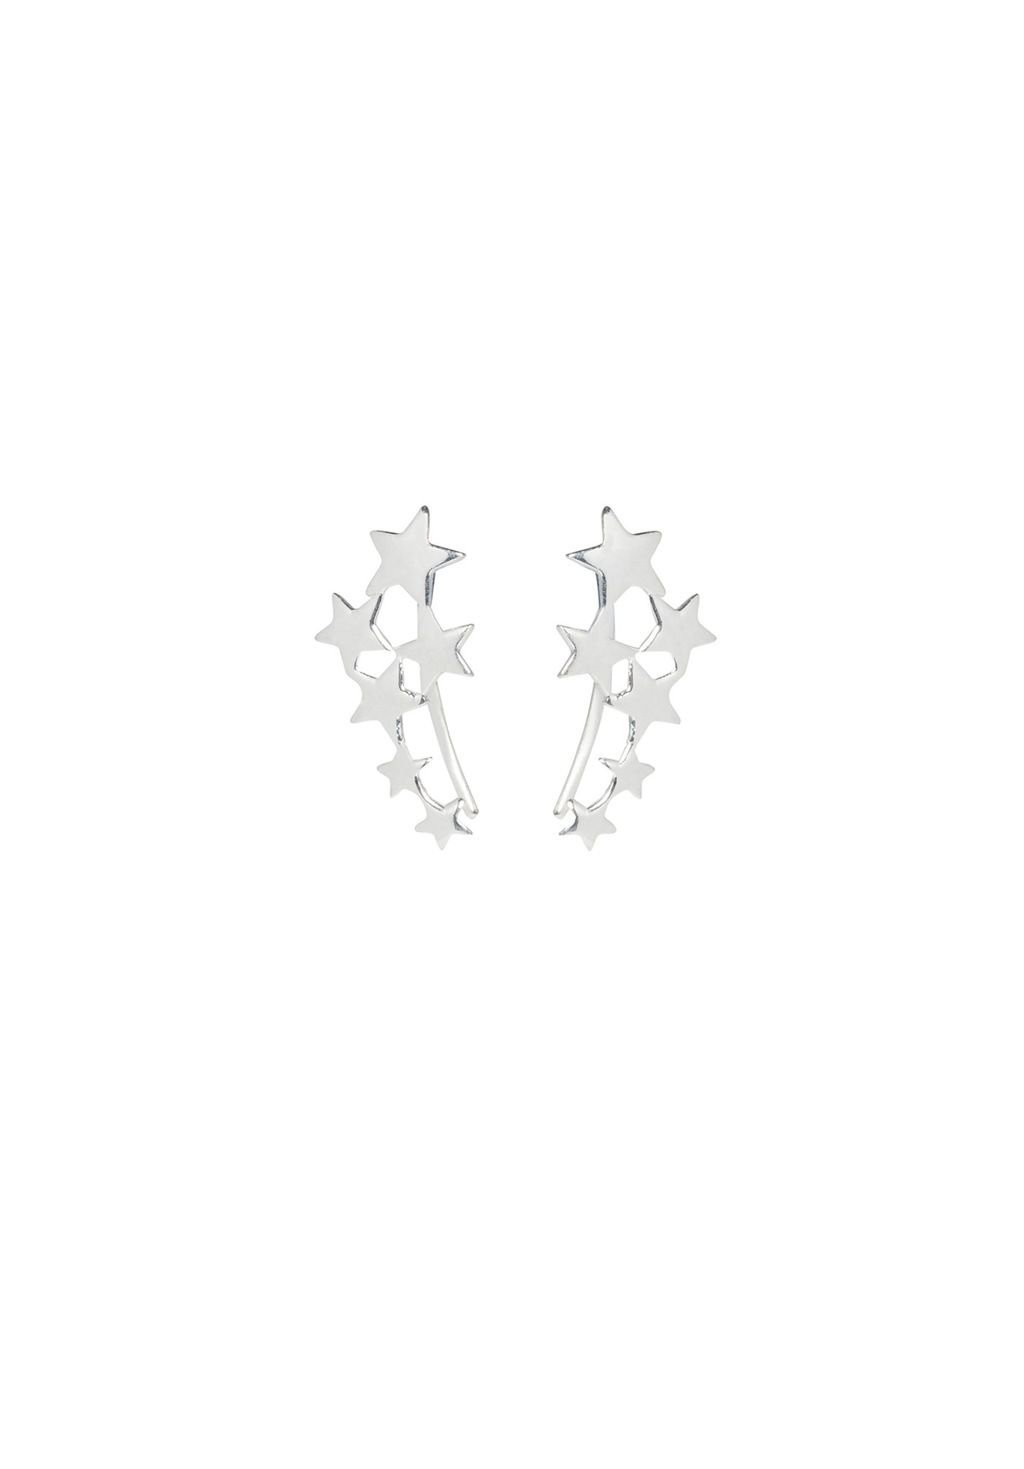 Scatter Star Ear Hooks - predominant colour: silver; occasions: casual, evening, creative work; length: short; size: small/fine; material: chain/metal; fastening: pierced; finish: metallic; style: ear cuffs; season: a/w 2016; wardrobe: highlight